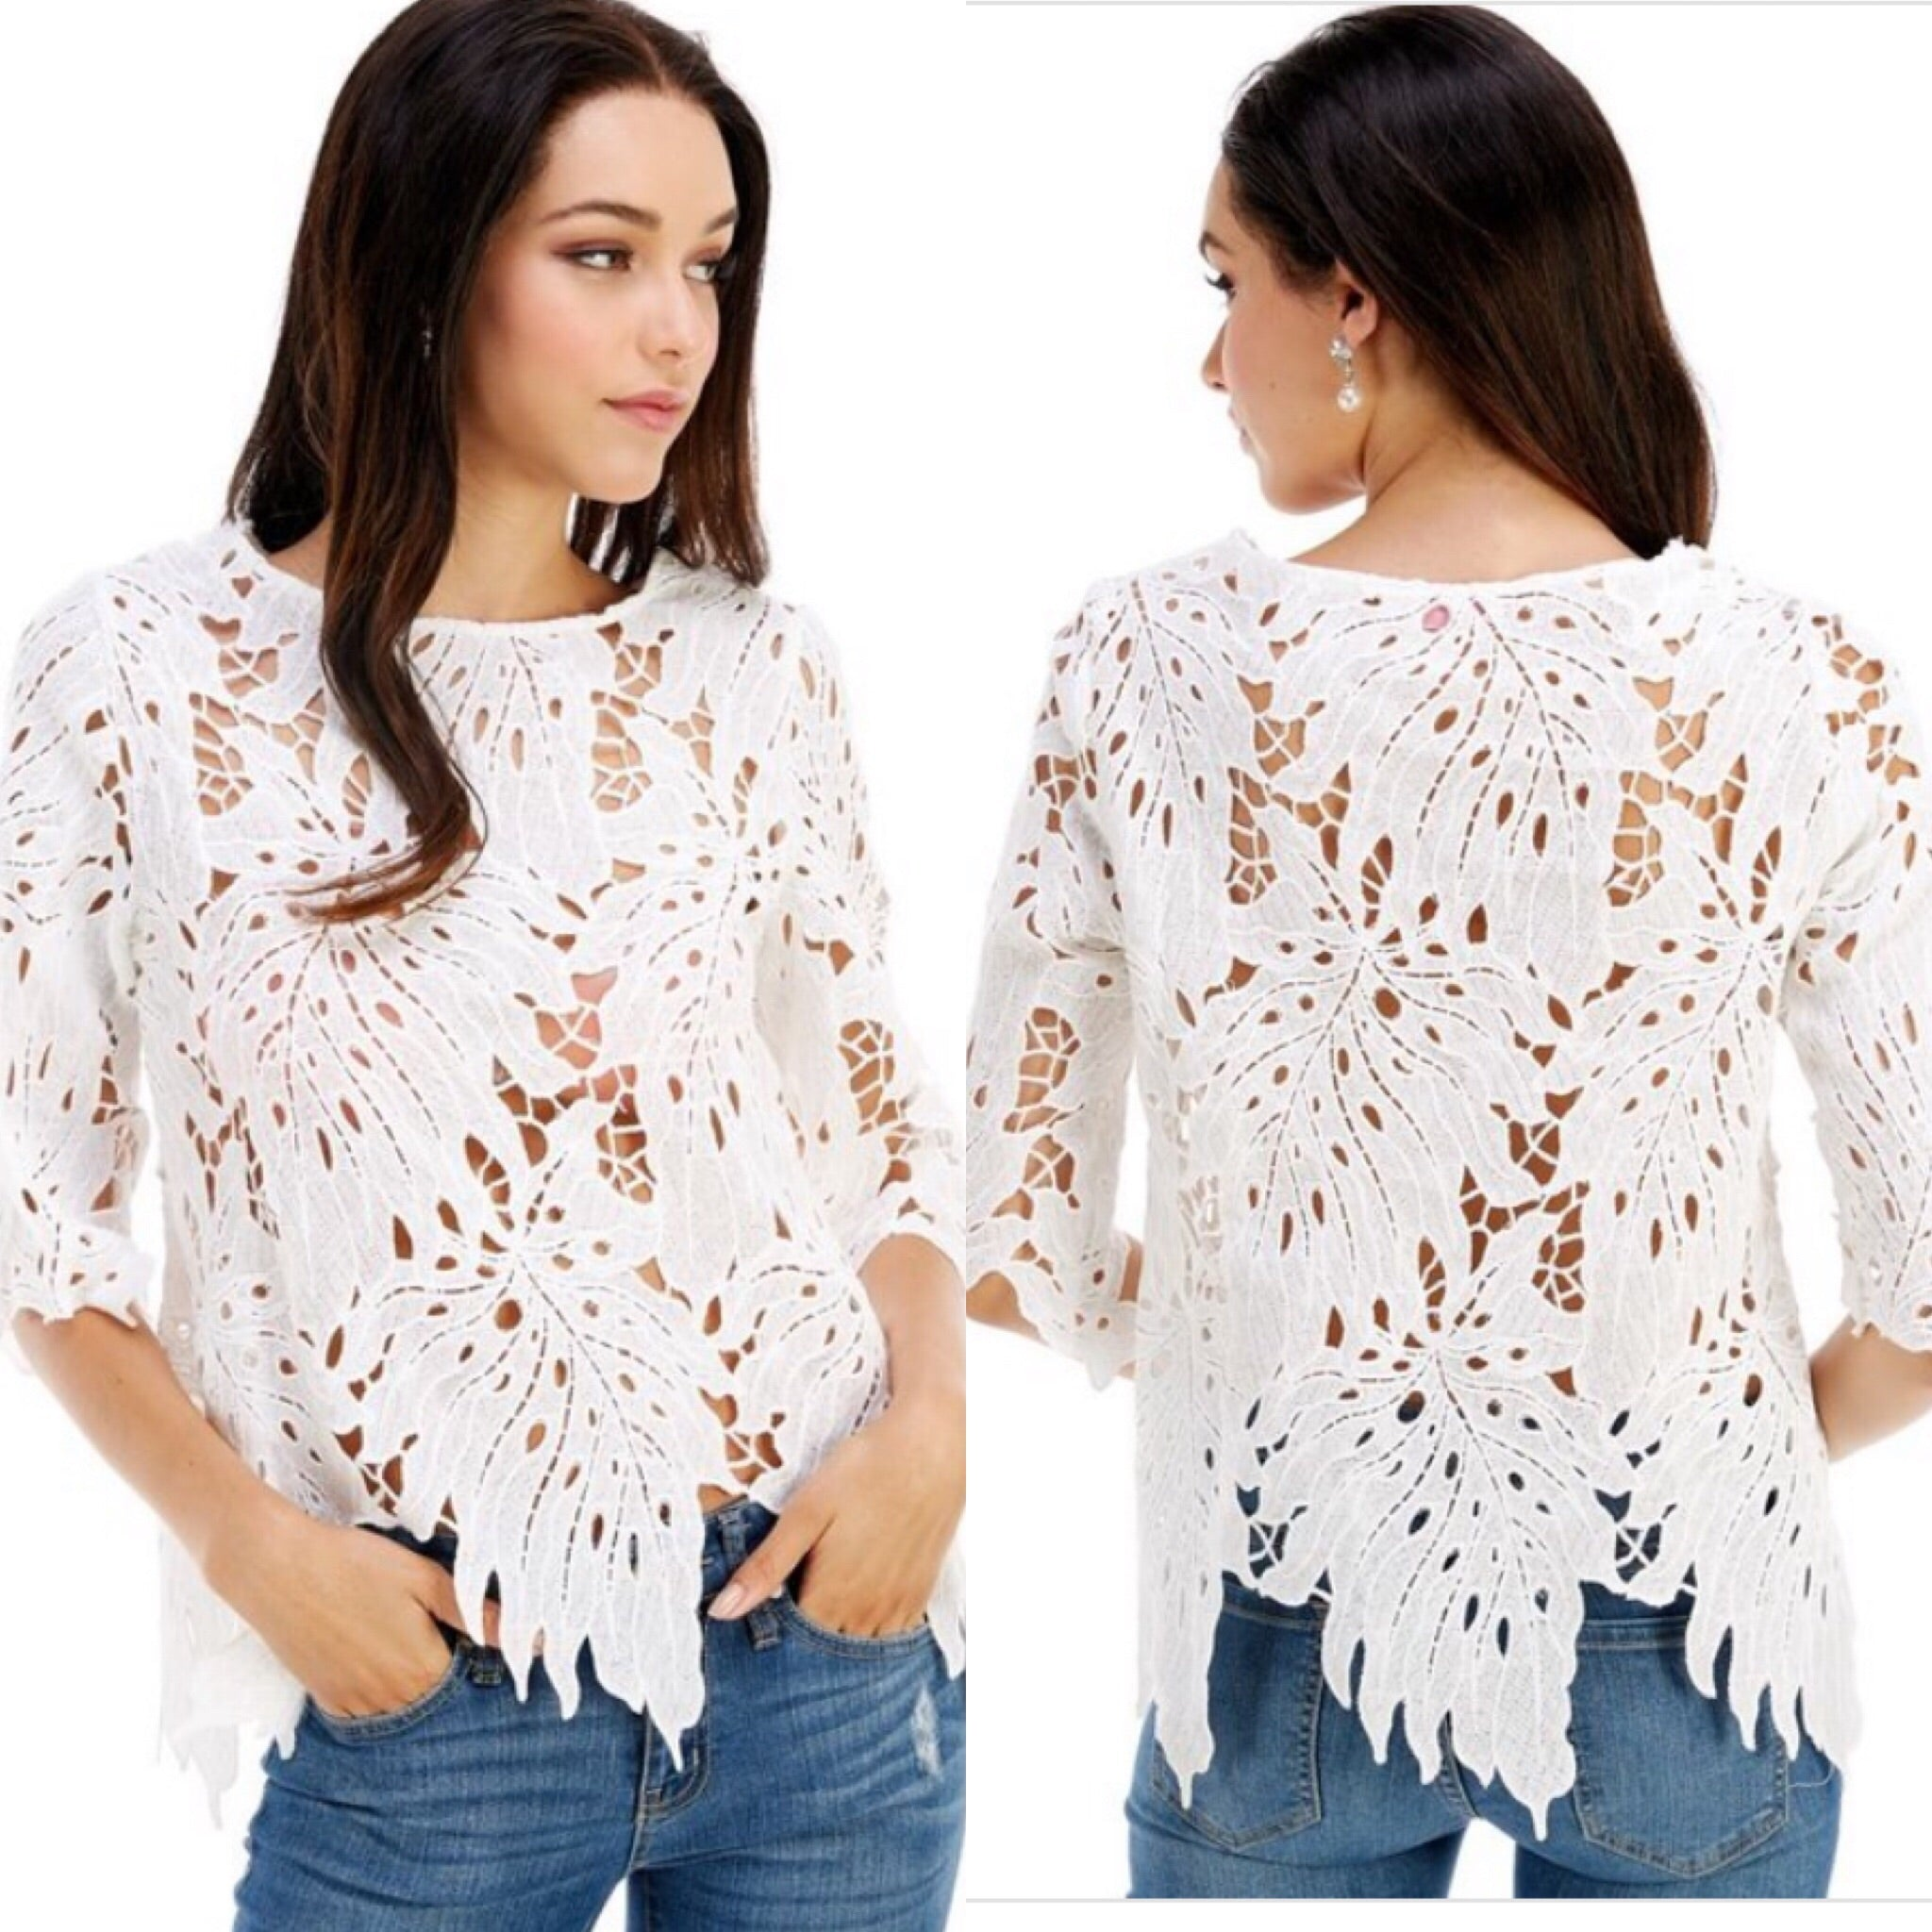 White Peek-A-Boo Cutout Top - TRUE.